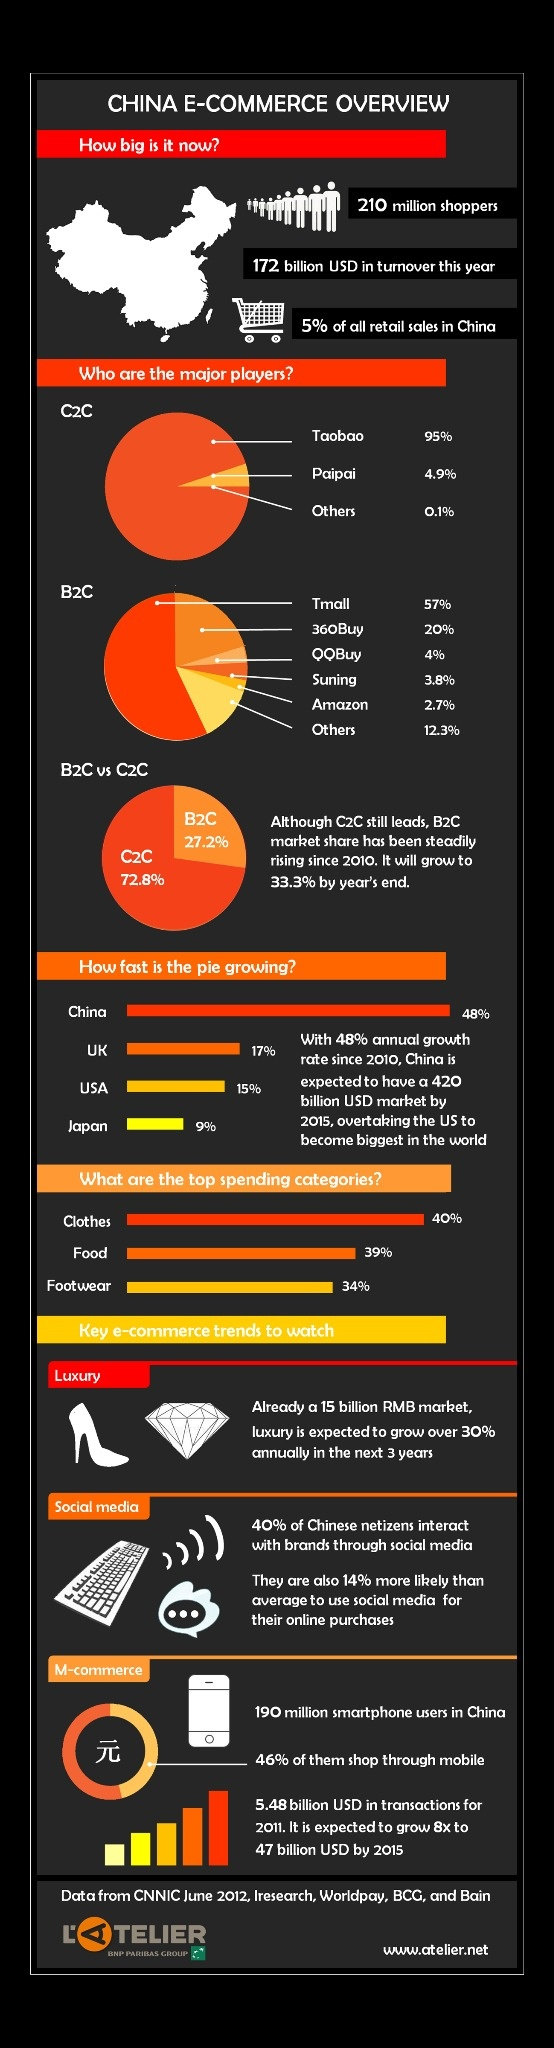 L'Atelier's infographic containing the latest and greatest in China's e-commerce ecosystem.